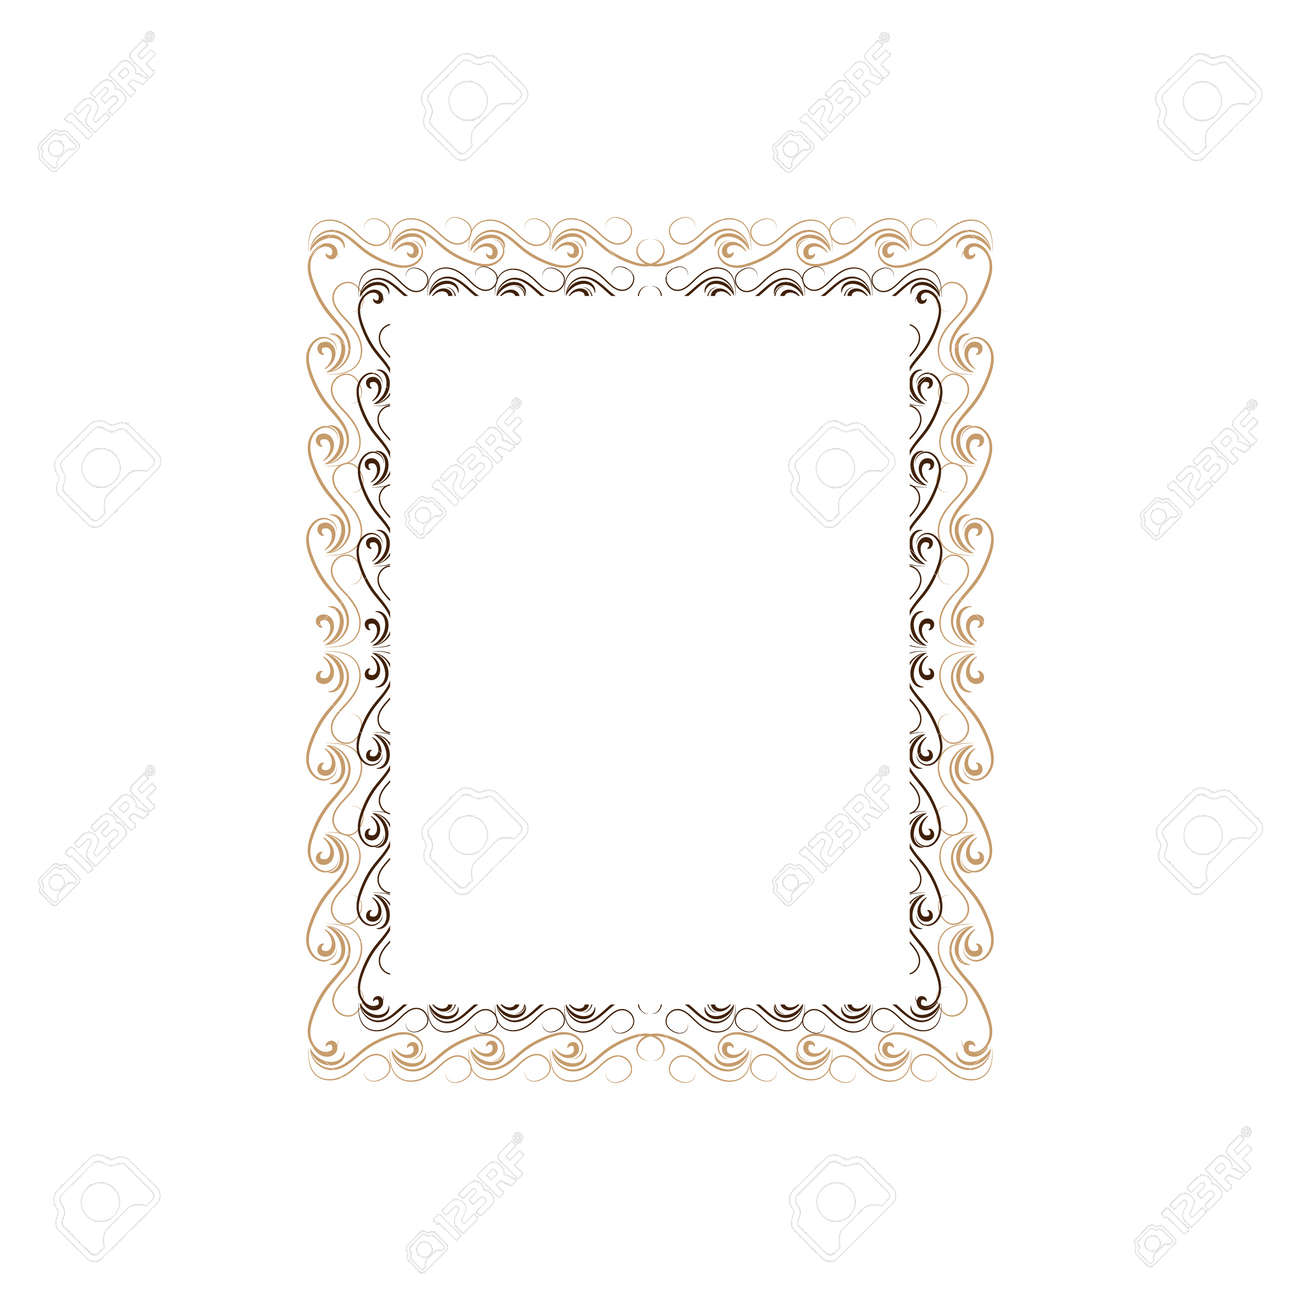 Gold frame with wavy line for photo, blank, prints - 159702358